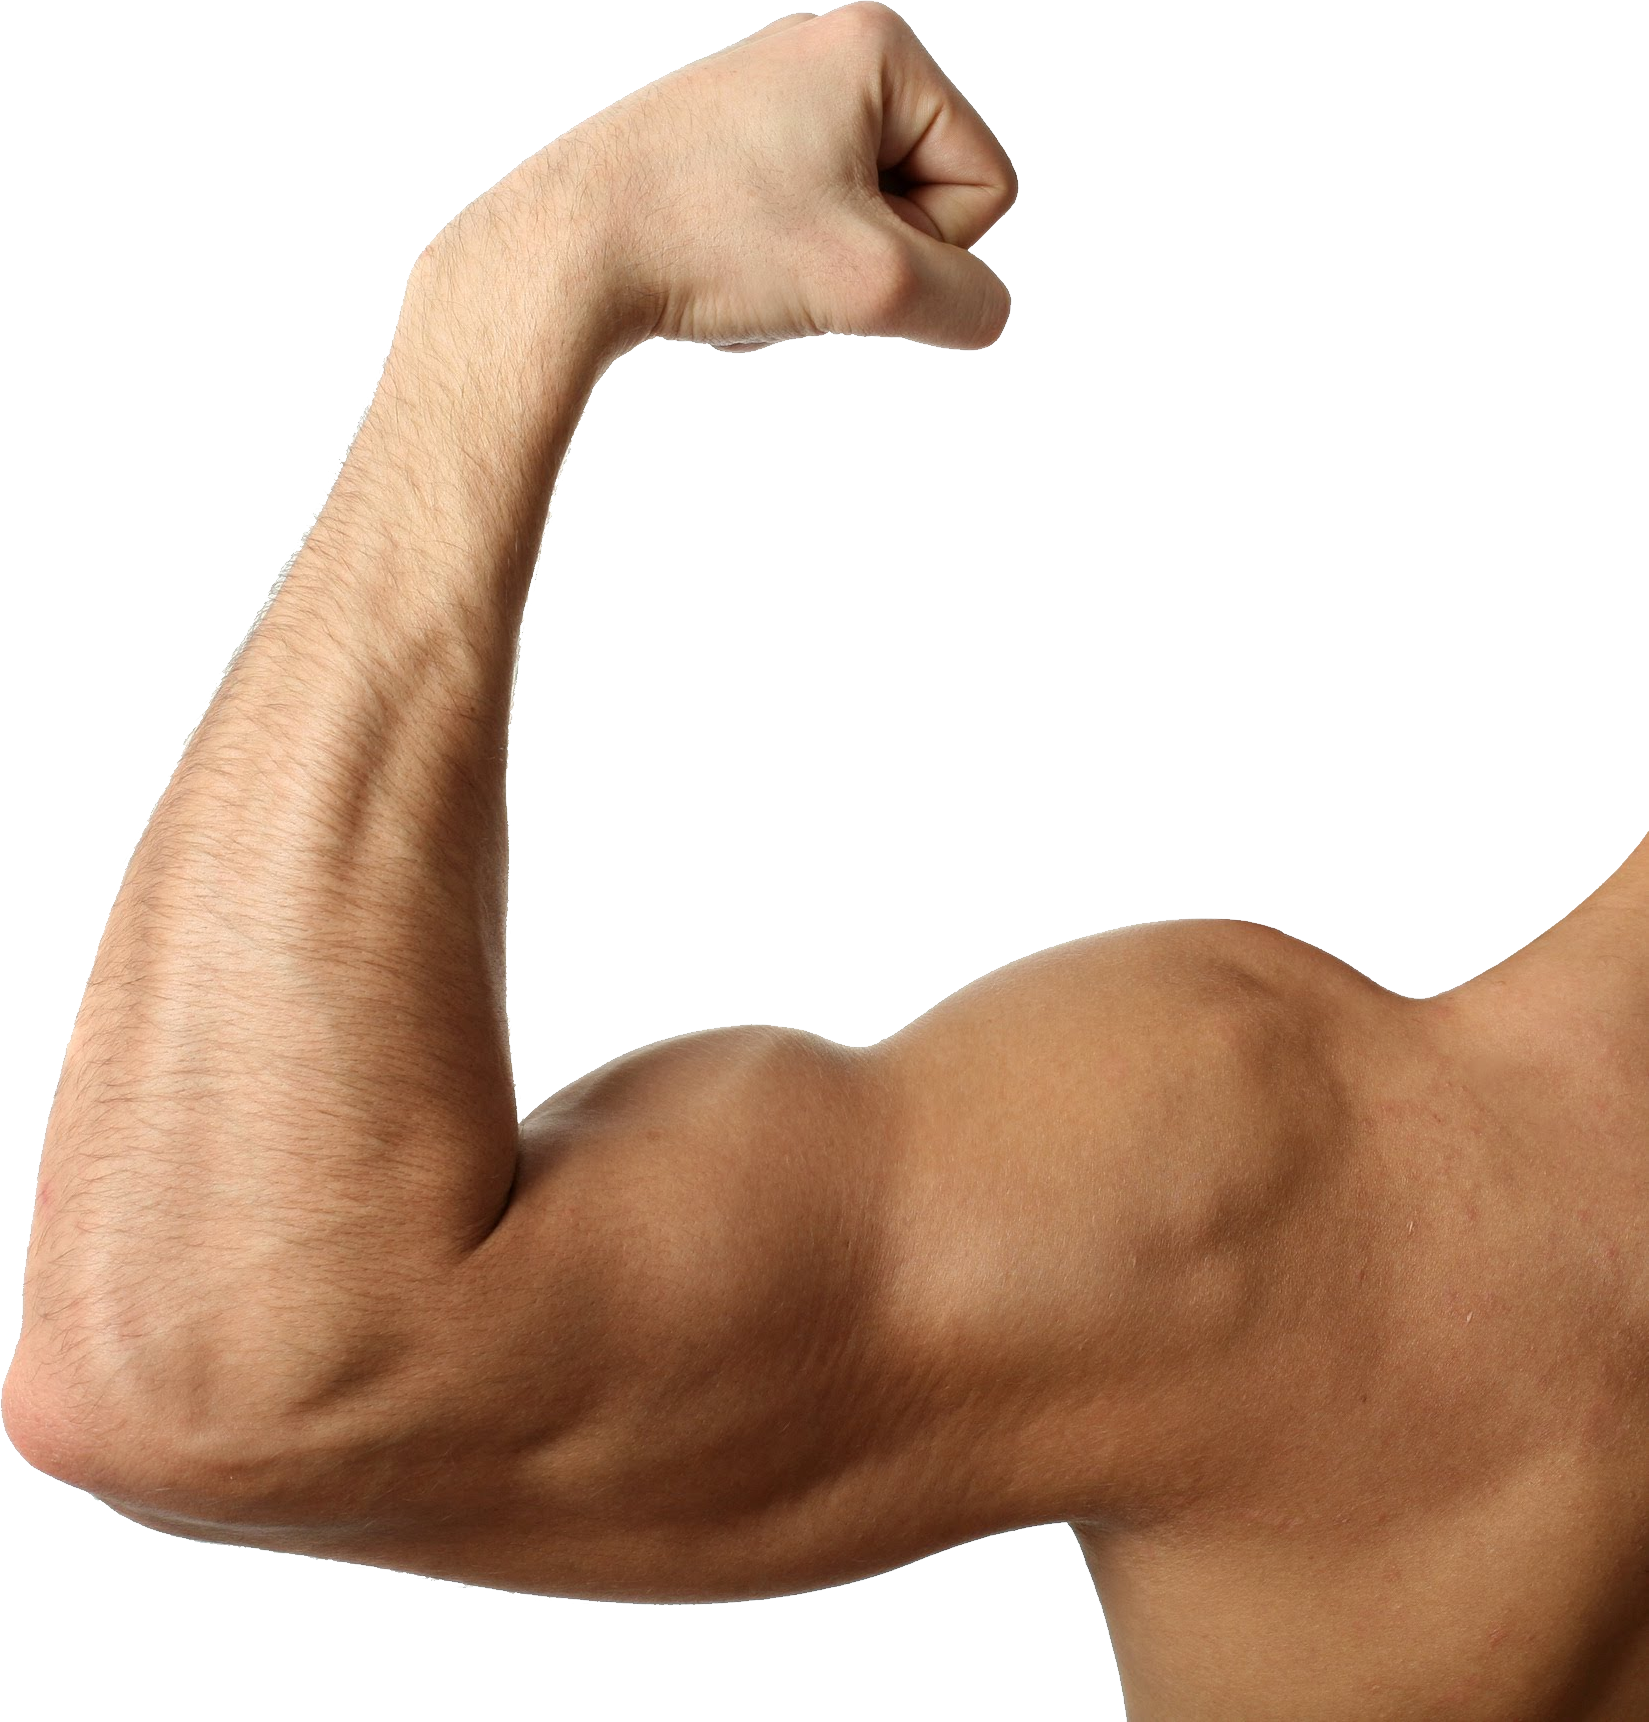 Muscle Png Image Body Builder Muscle Arm Muscles